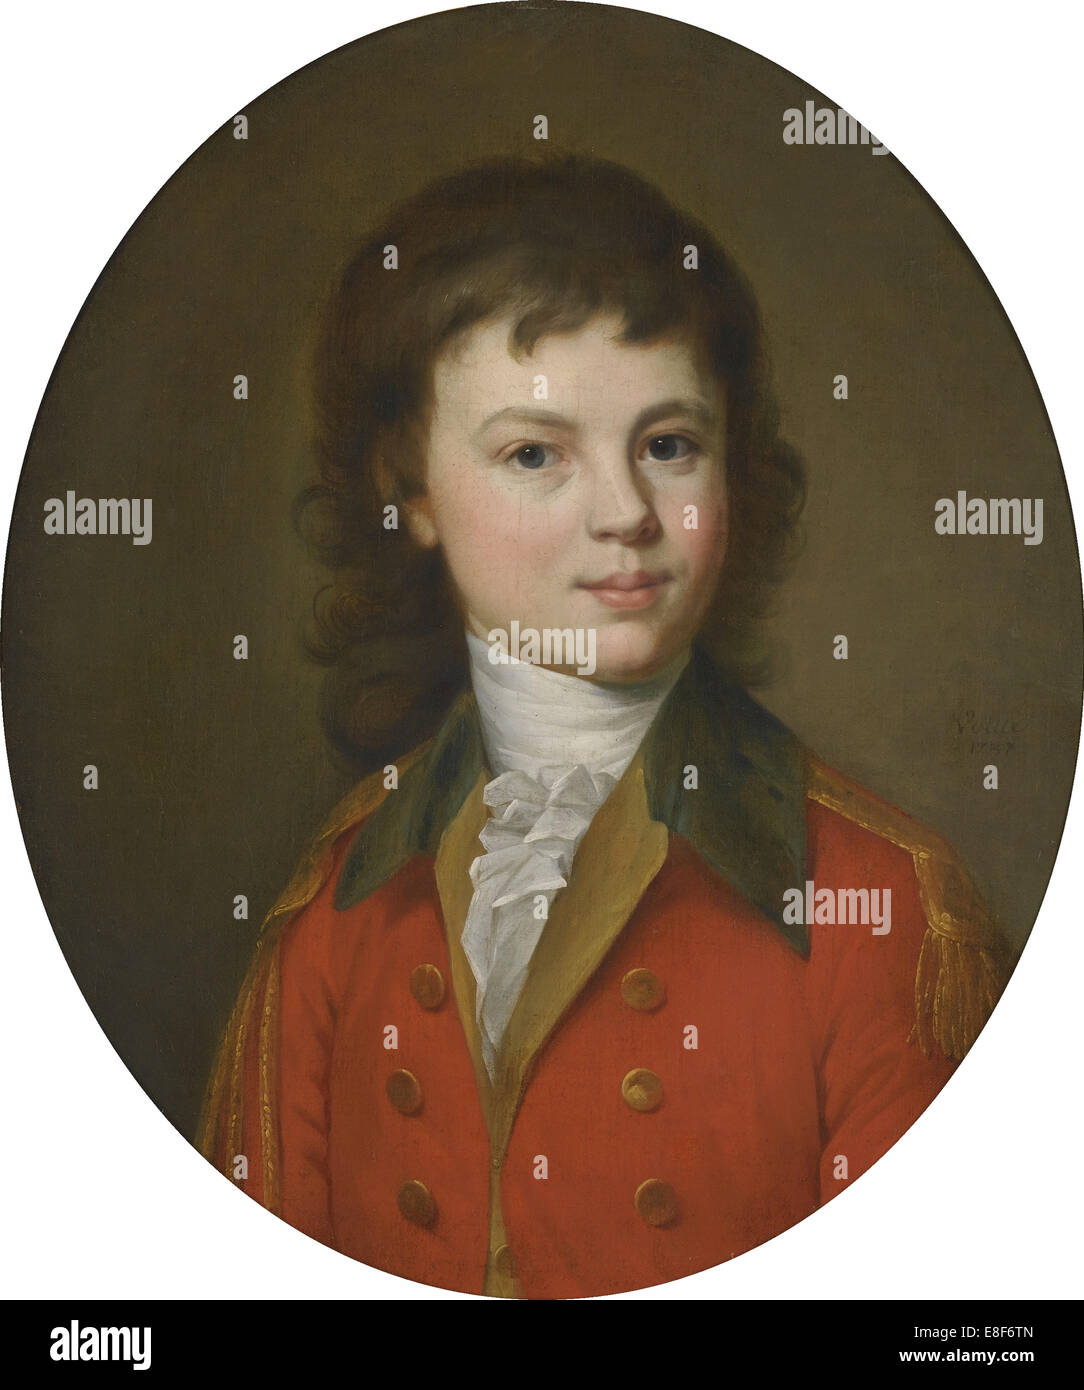 Portrait of Count Pavel Alexandrovich Stroganov (1774-1817), Aged 15. Artist: Voille, Jean Louis (1744-after 1803) - Stock Image